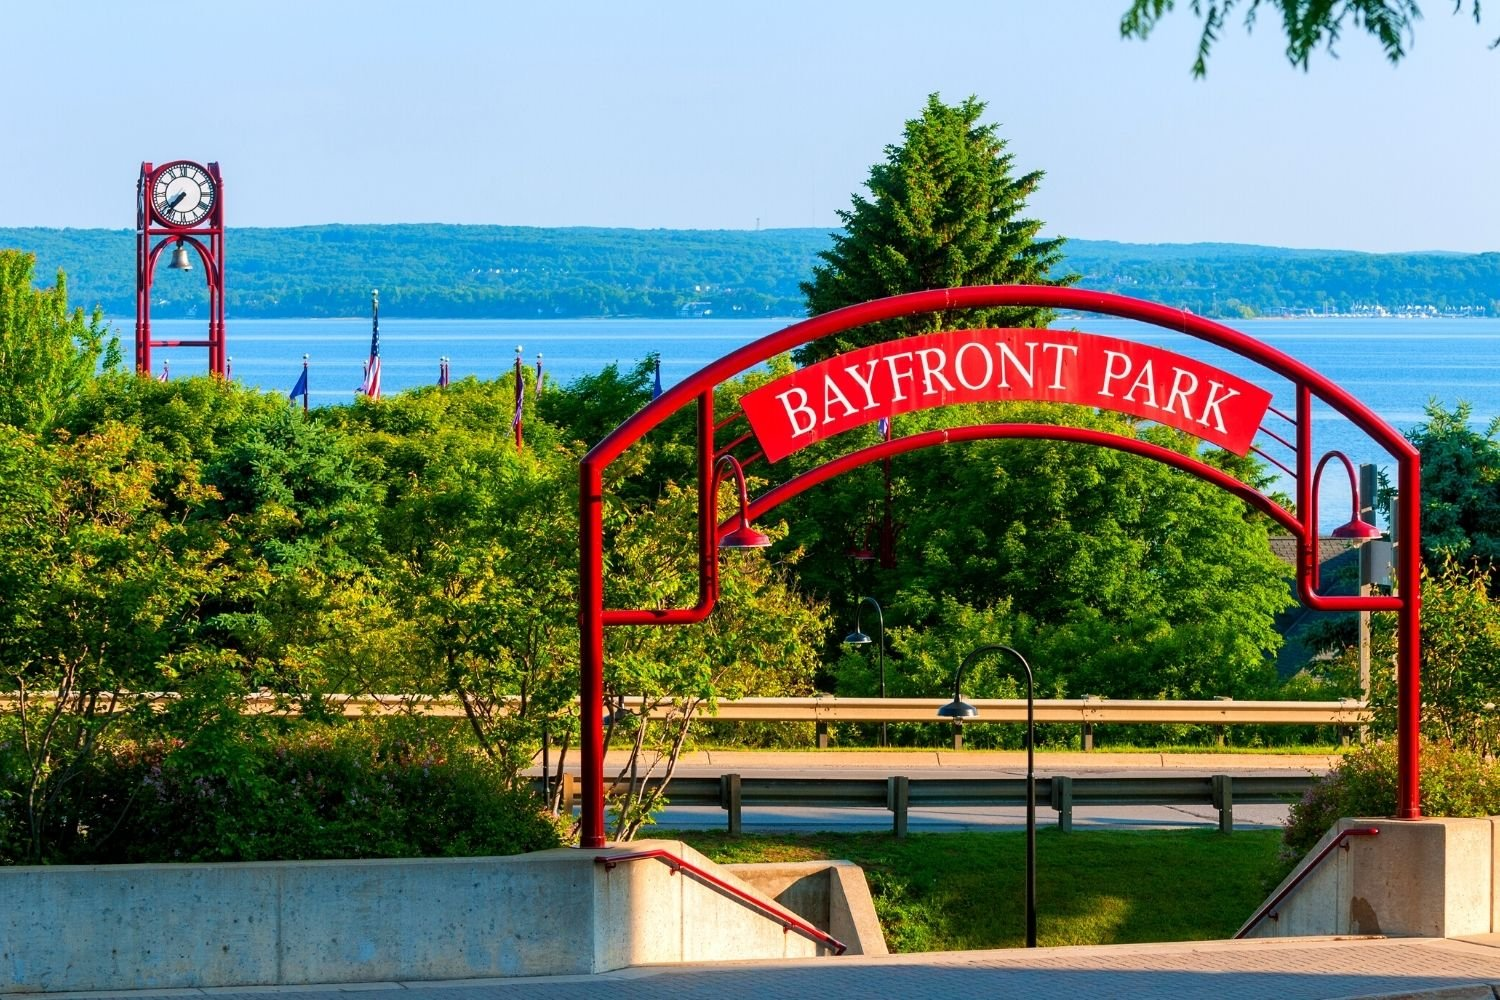 A visit to Petoskey's Bayfront Park is one of many great things to do in Petoskey